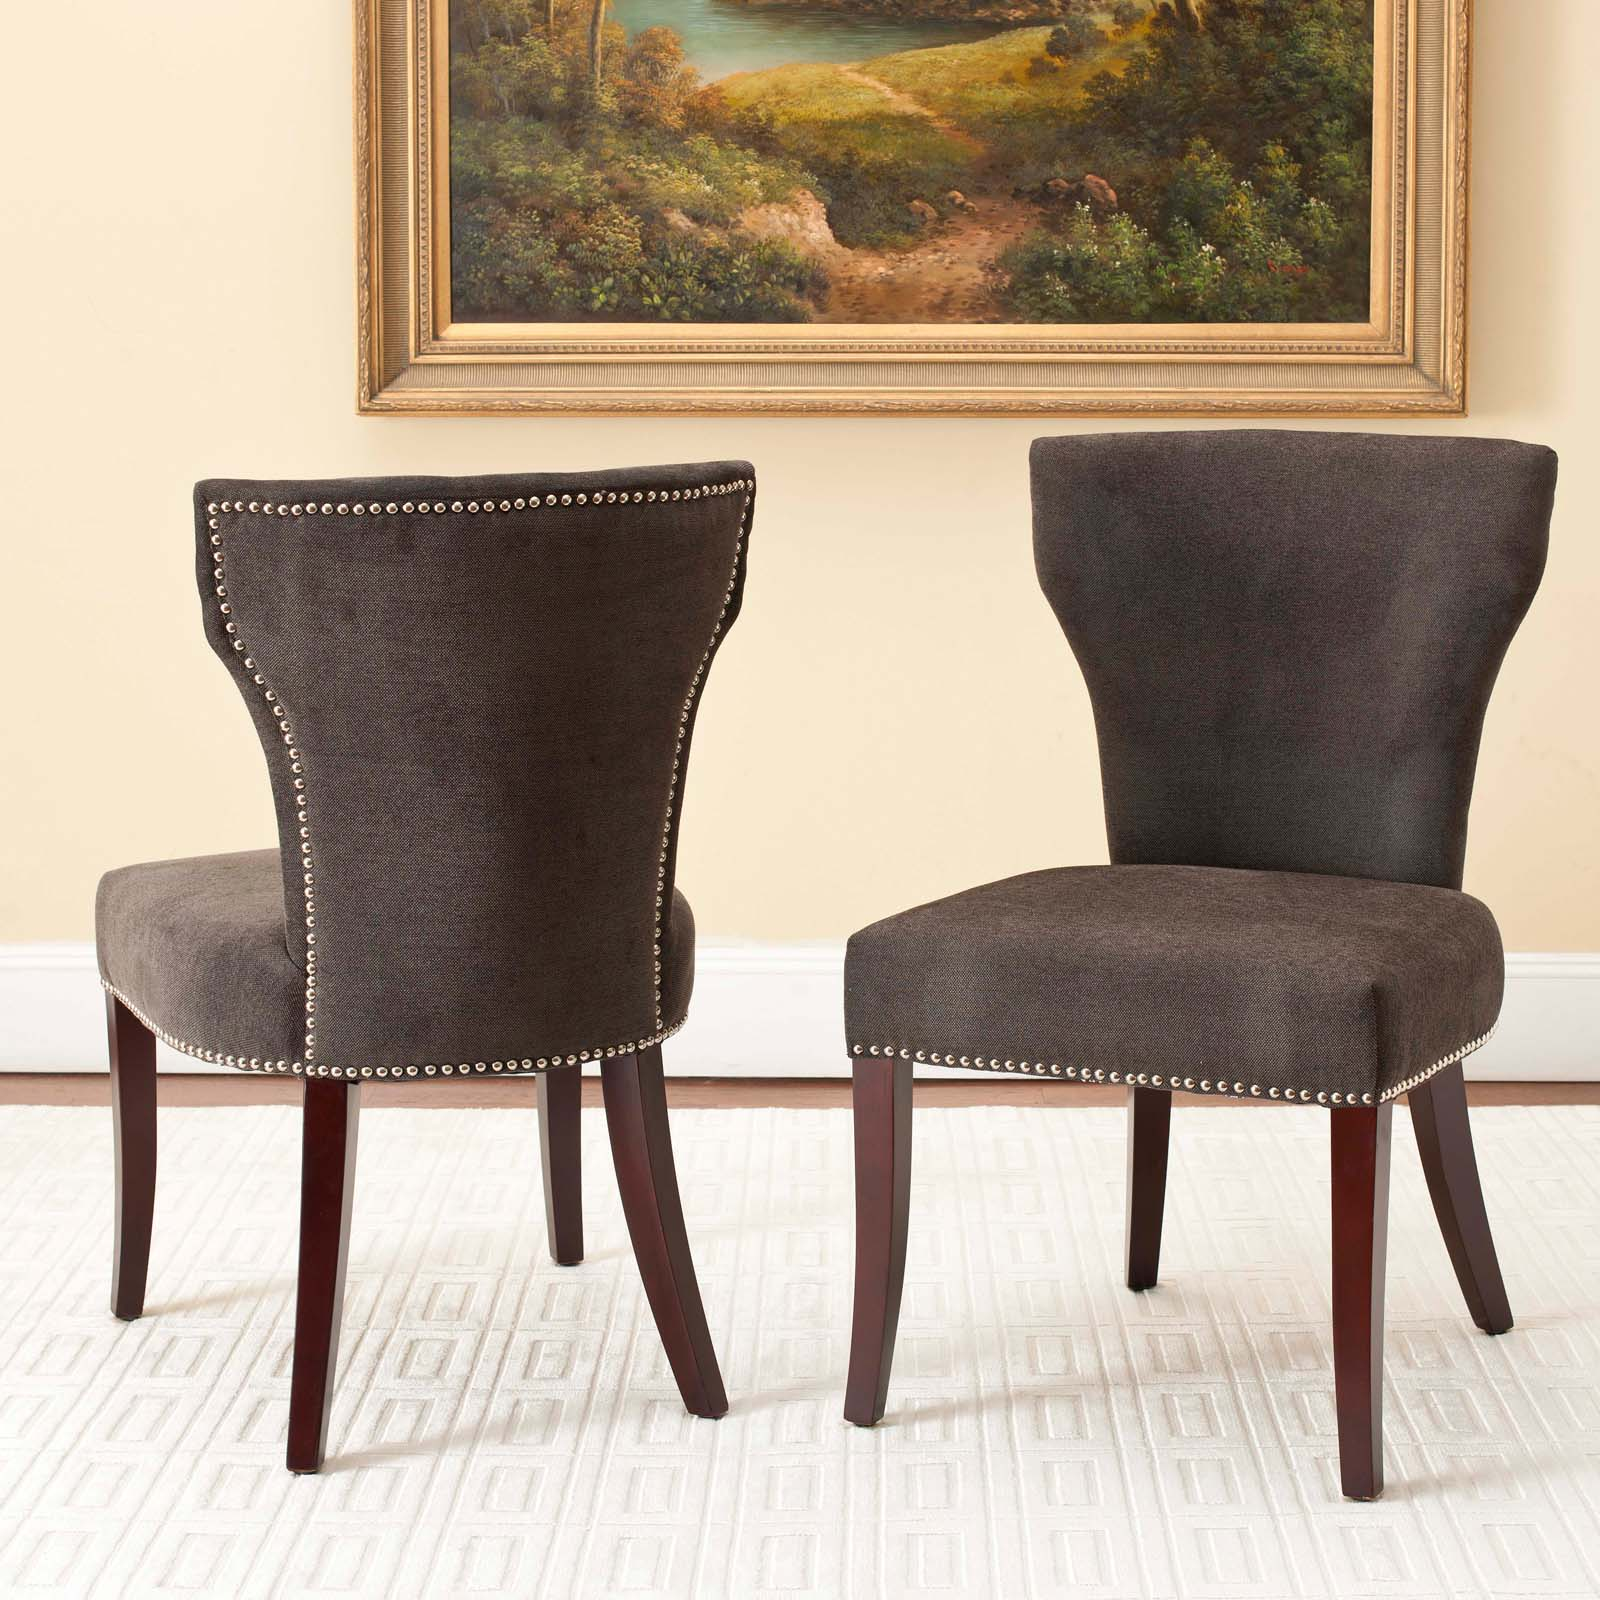 Safavieh Mason Dark Gray Upholstered Nailhead Dining Side Chairs